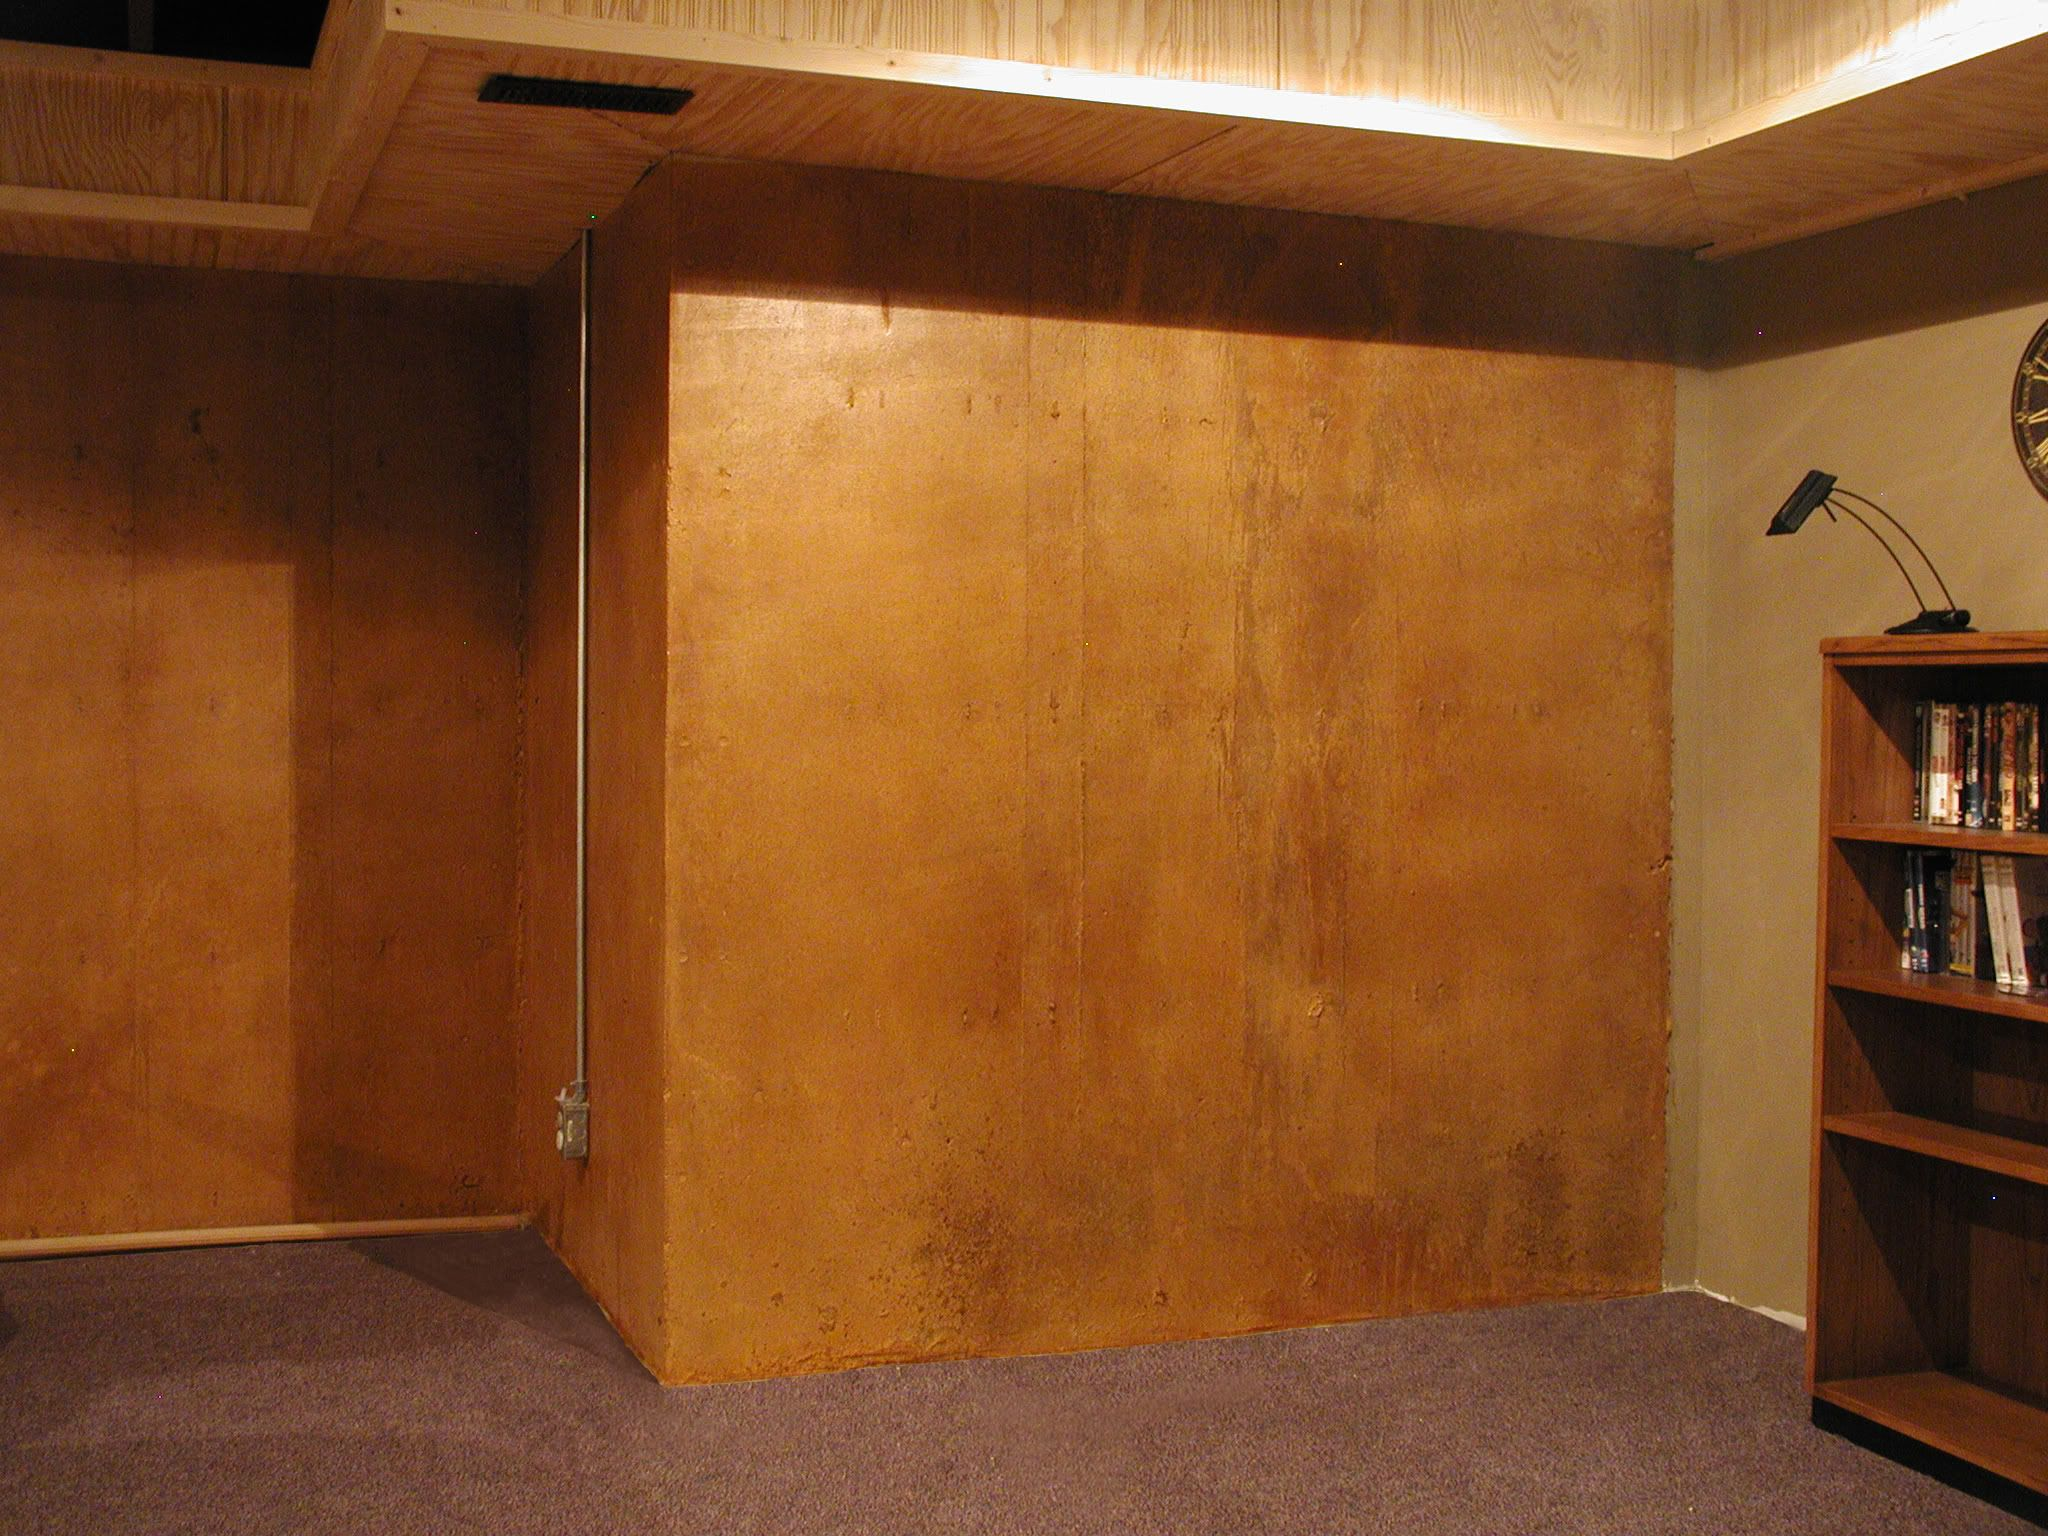 exposed concrete wall is acid stained in lieu of stone due to cost